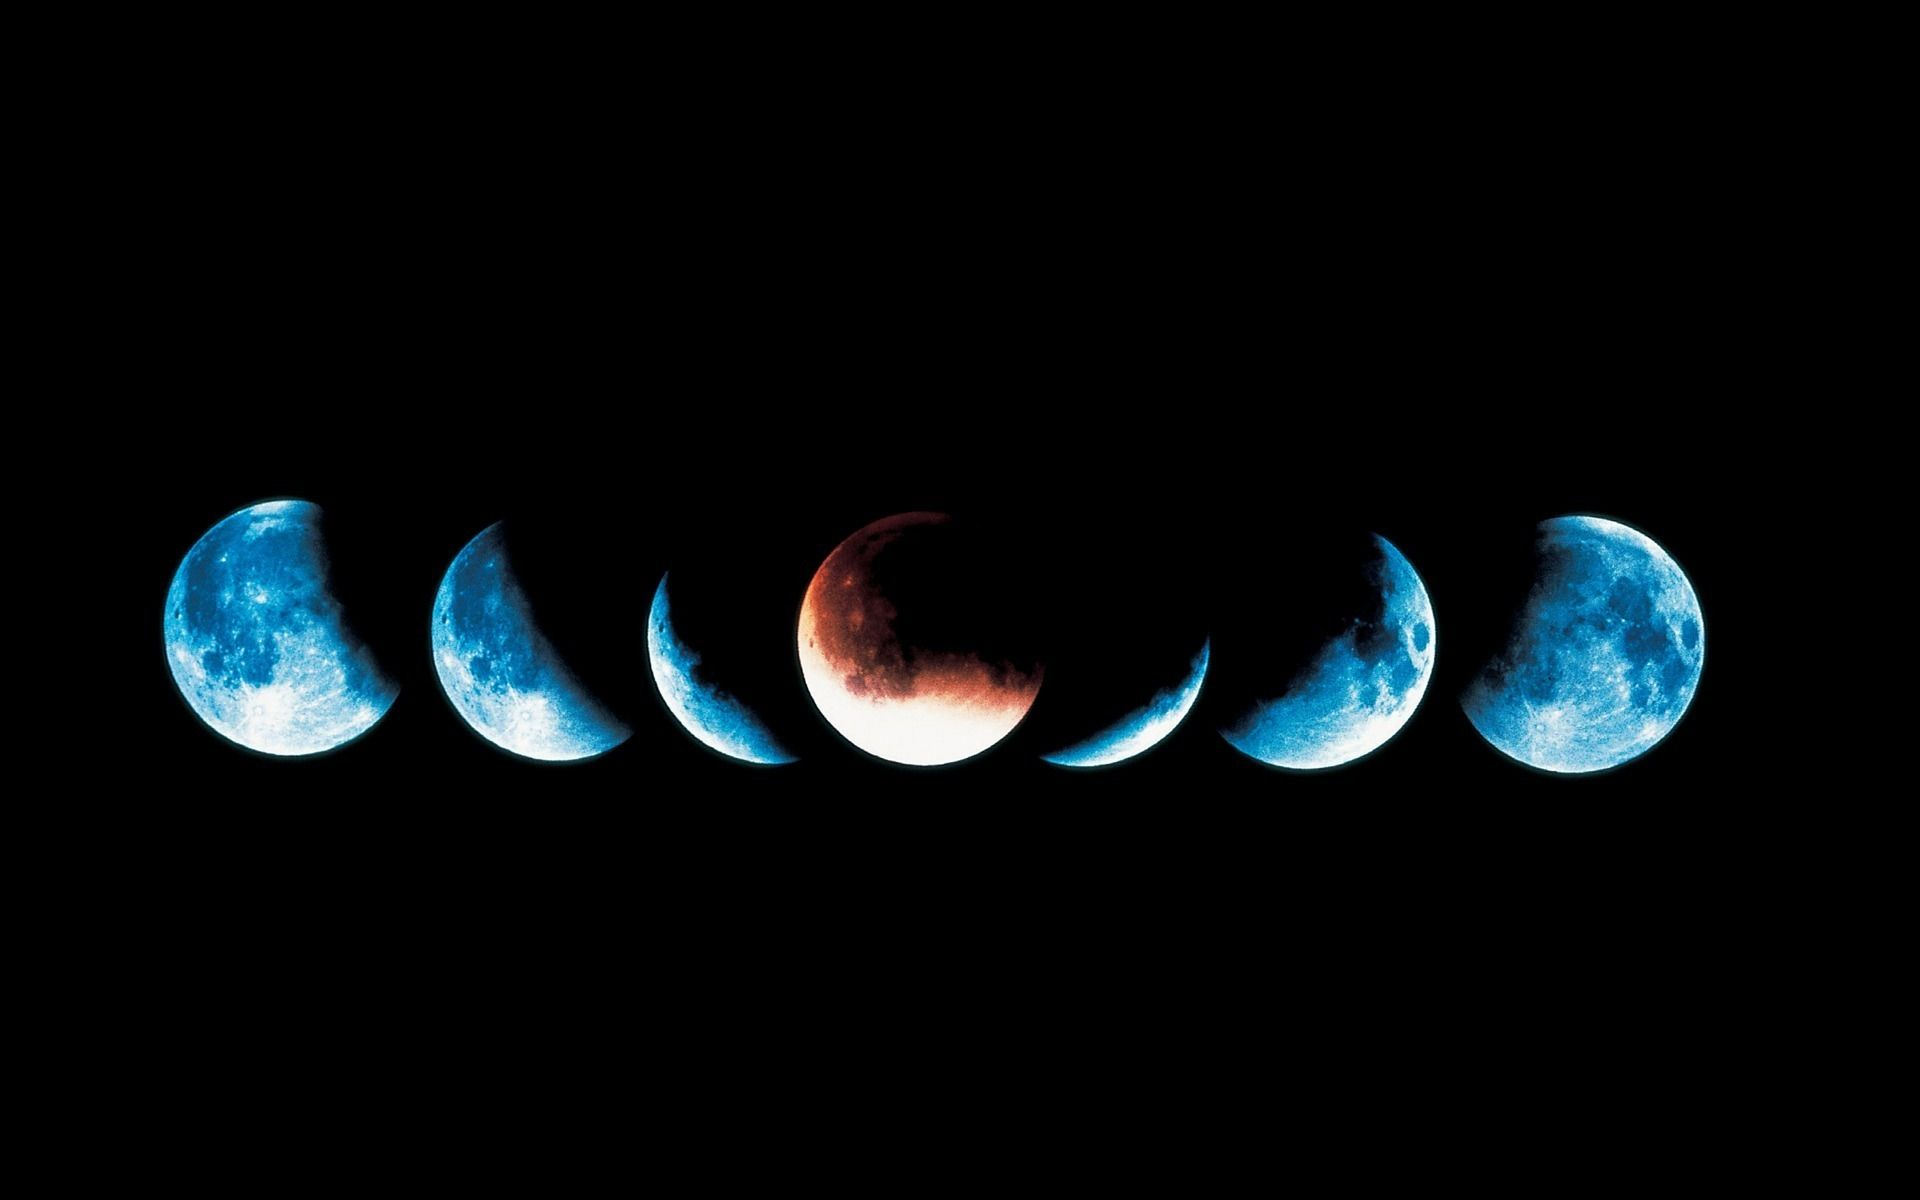 Planets | backgrounds blue parade wallpapers eclipse black planets 1920x1200